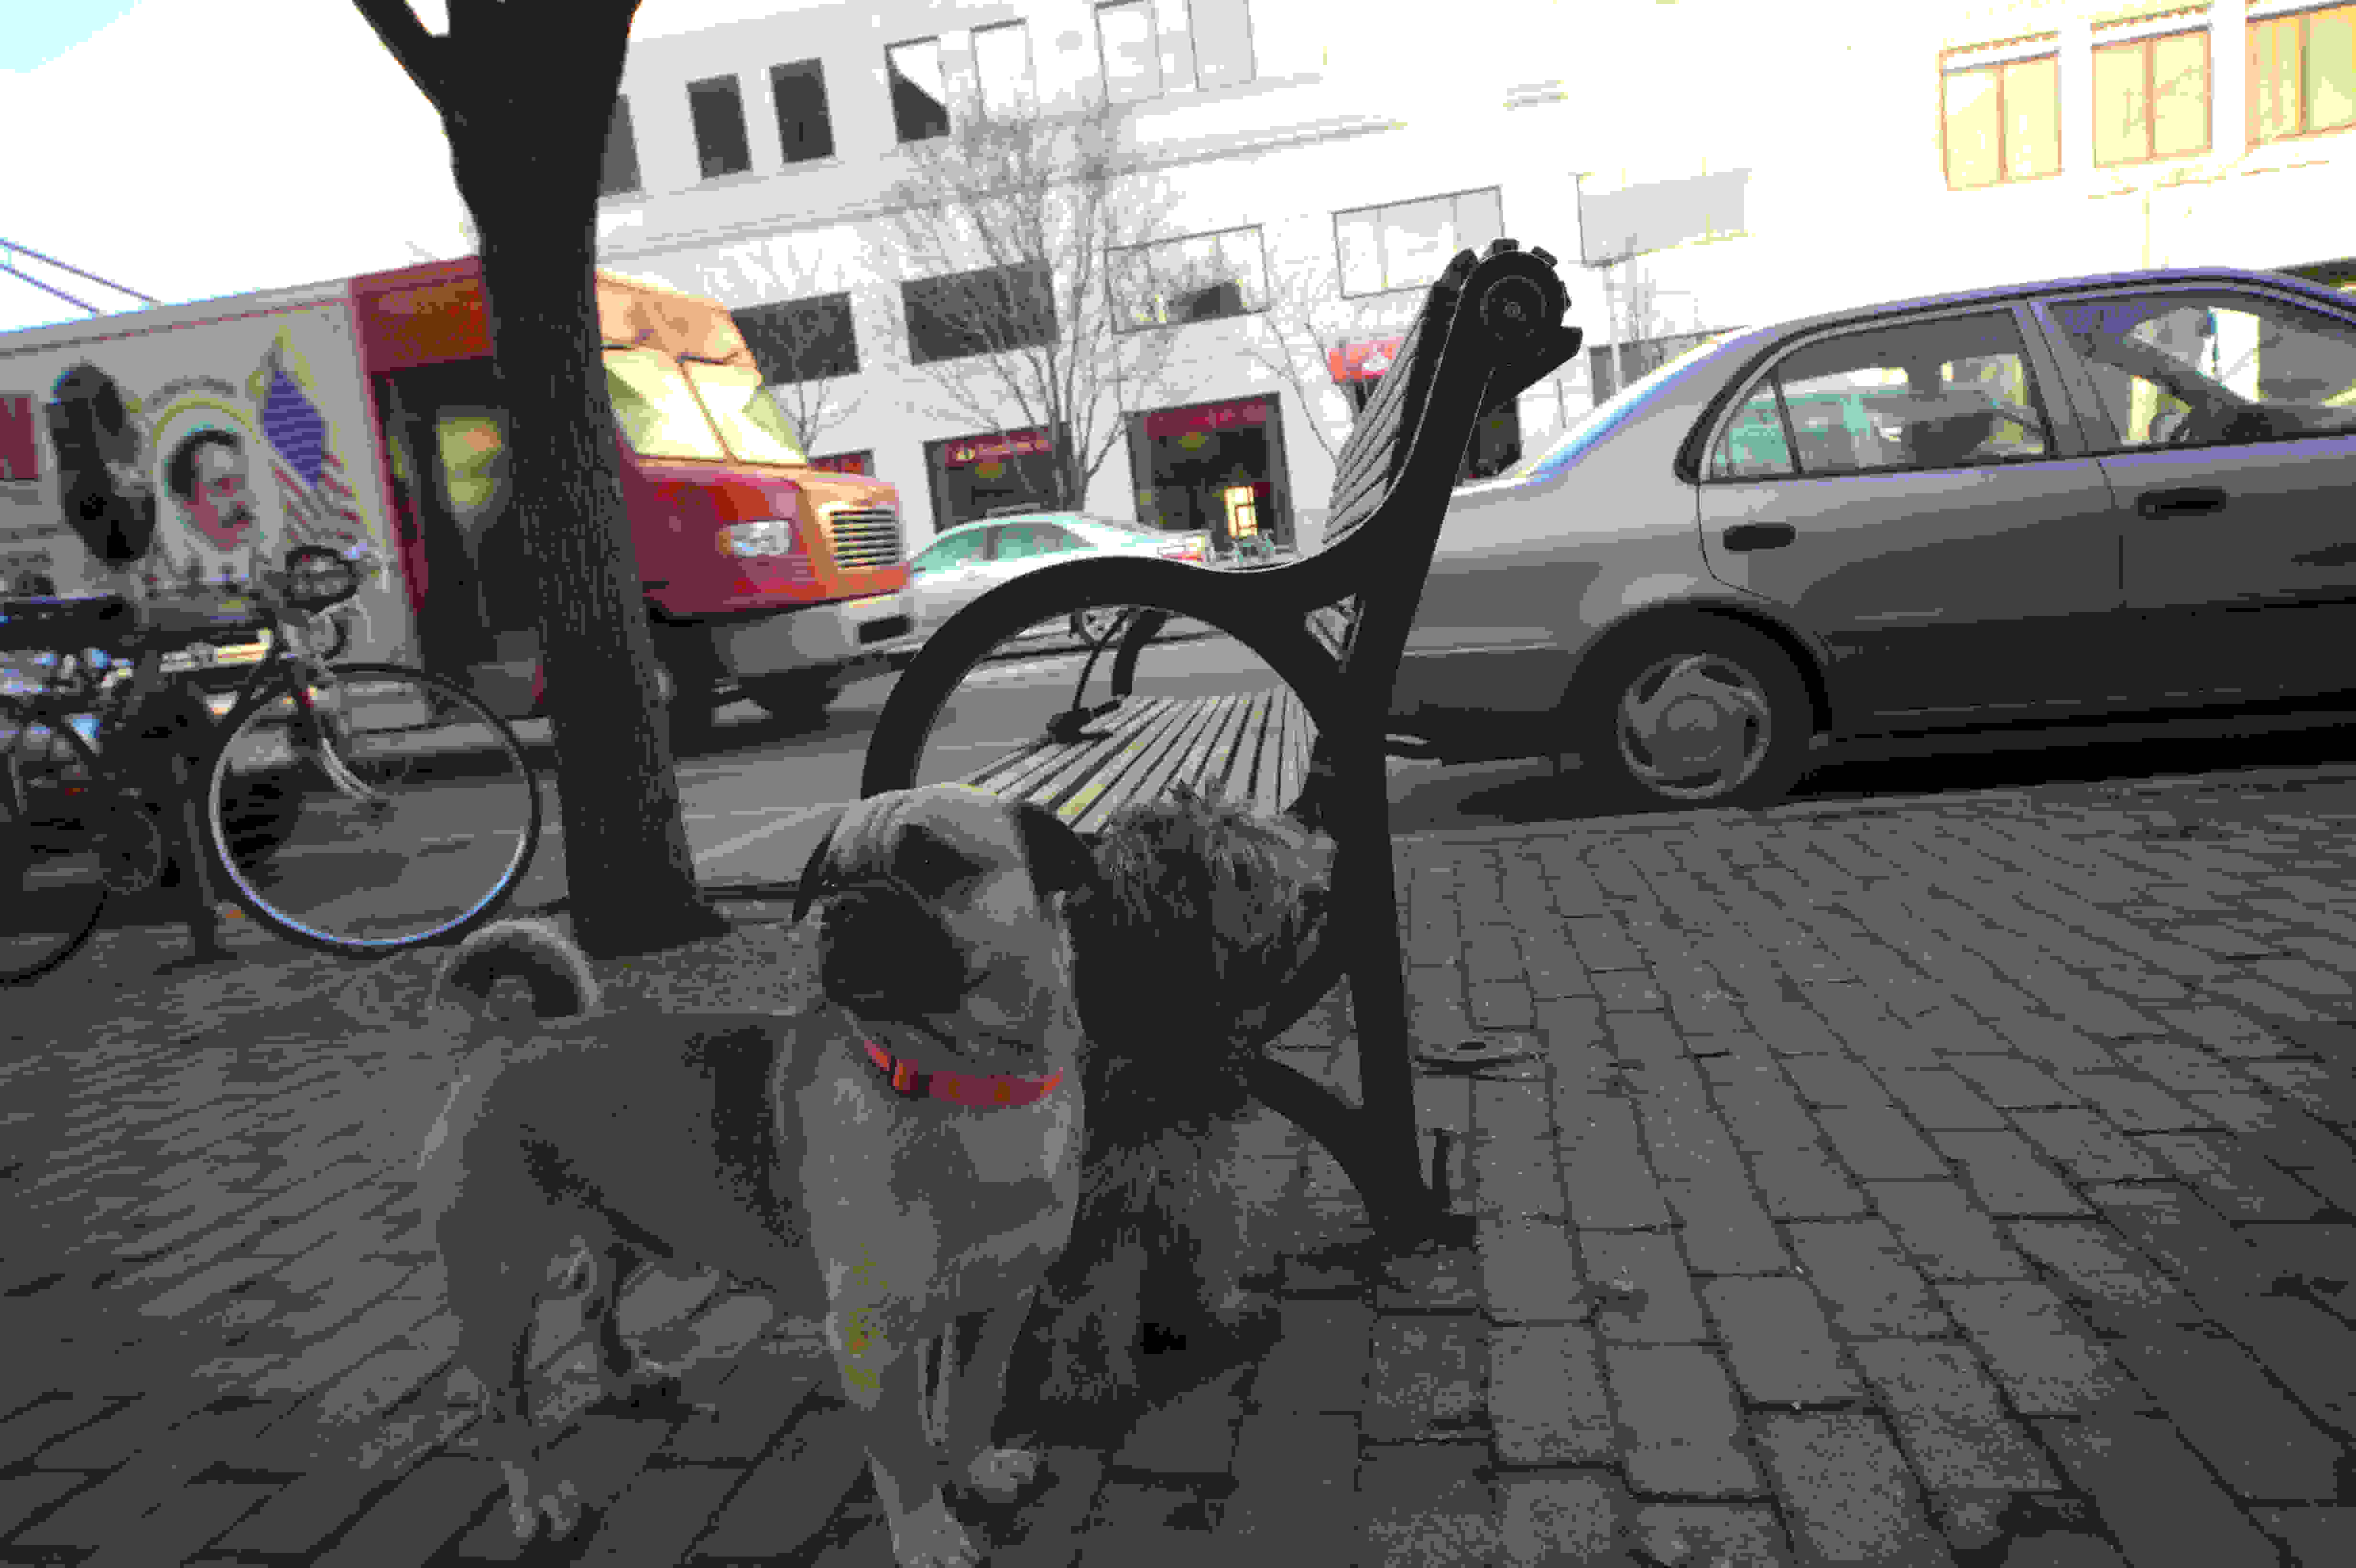 The Nikon D4S isn't the most discrete street shooting camera, but these subjects didn't seem to care.